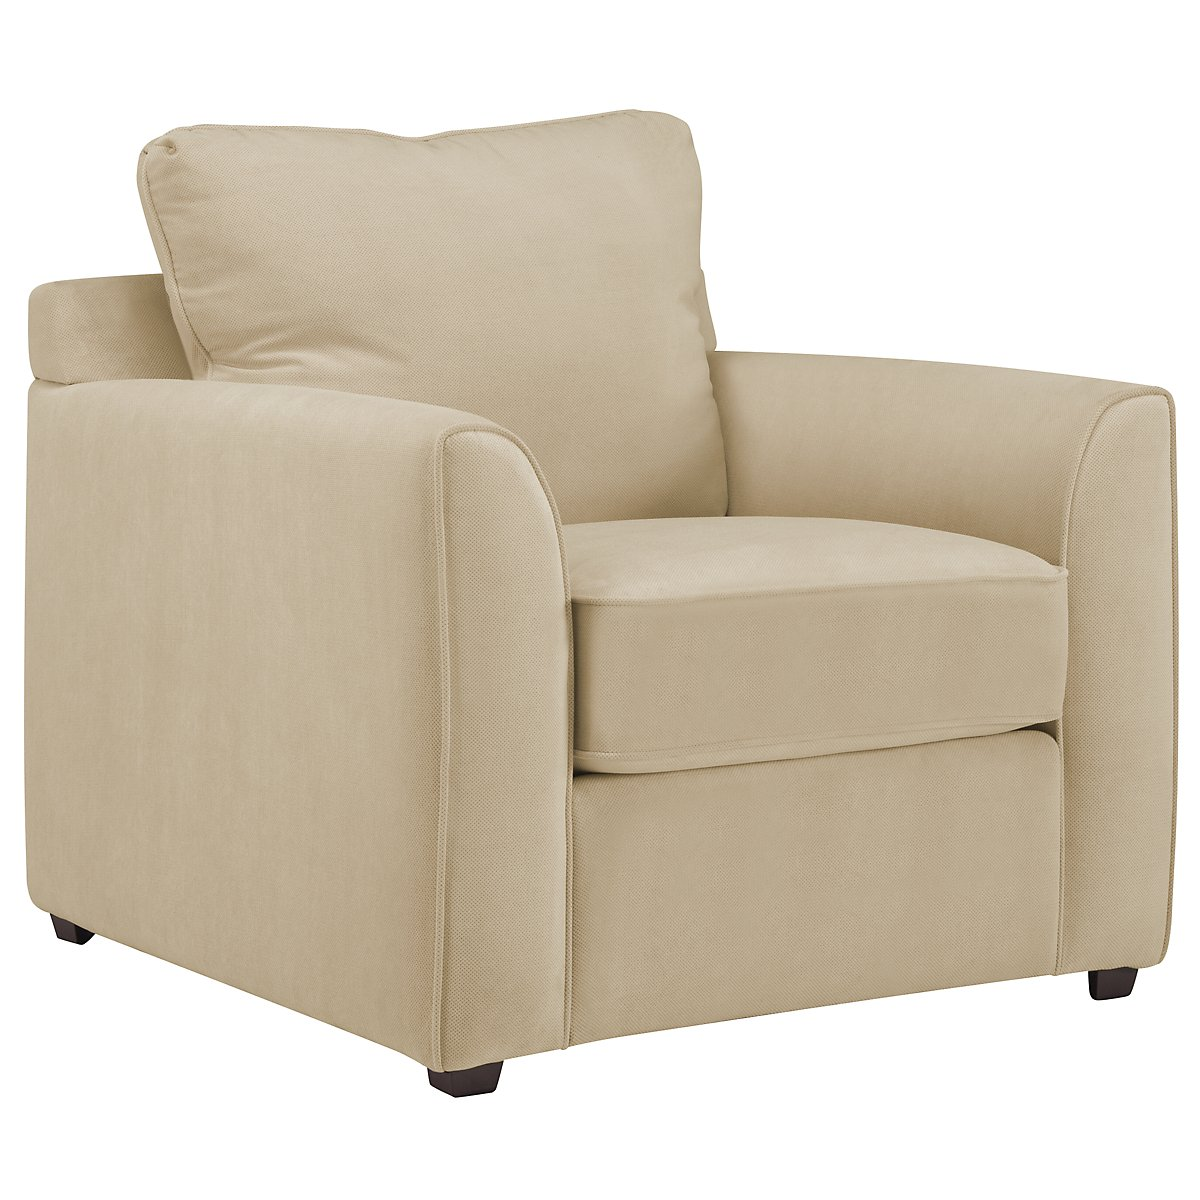 Express3 Light Beige Microfiber Chair